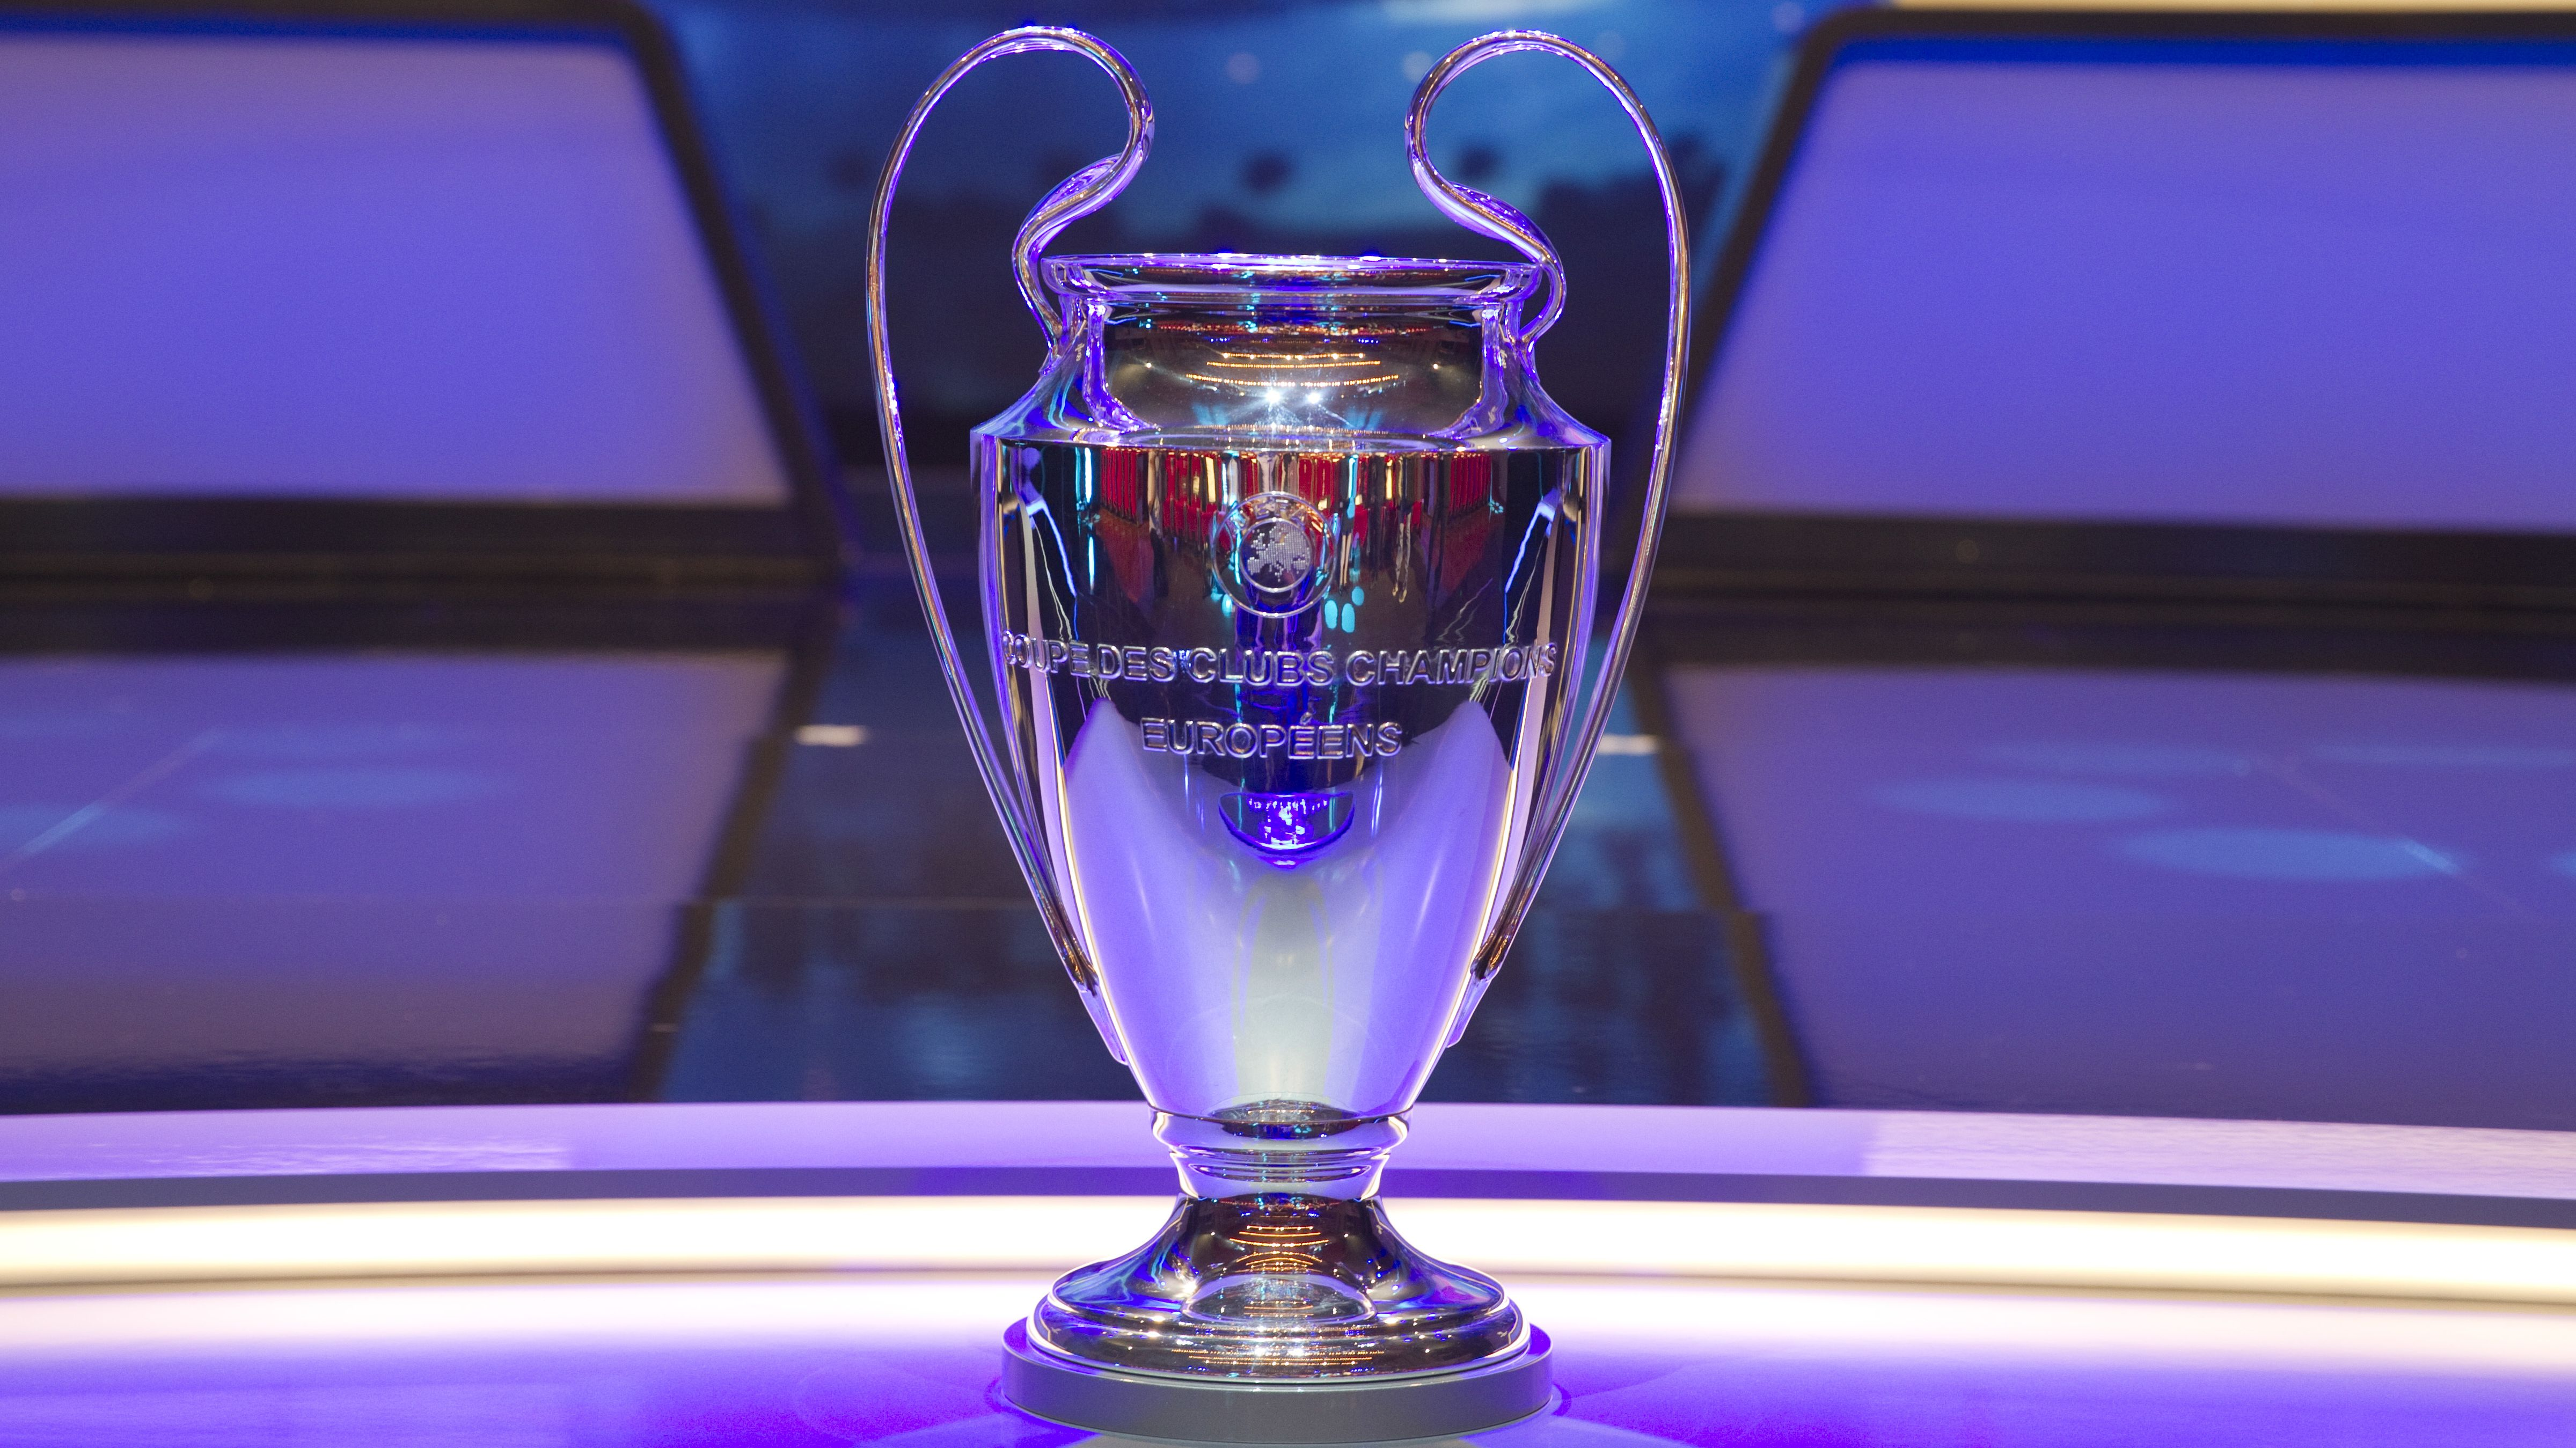 Der Champions-League-Pokal